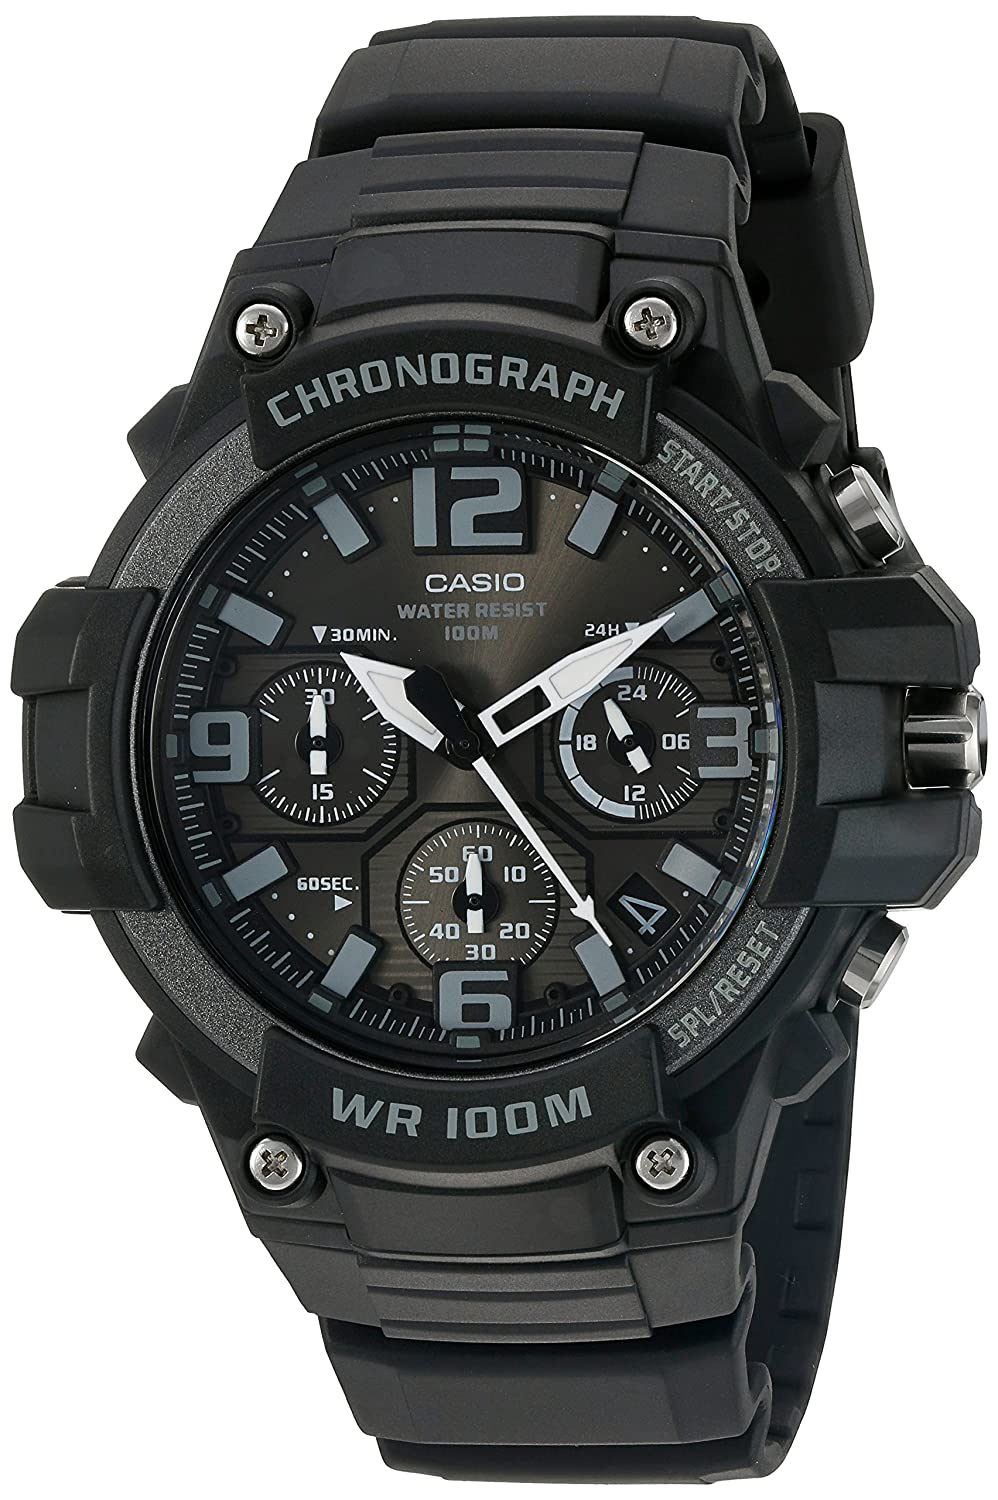 Casio Men s Heavy Duty Chronograph Stainless Steel Quartz Watch with Resin Strap, Black, 25 Model MCW-100H-1A3VCF